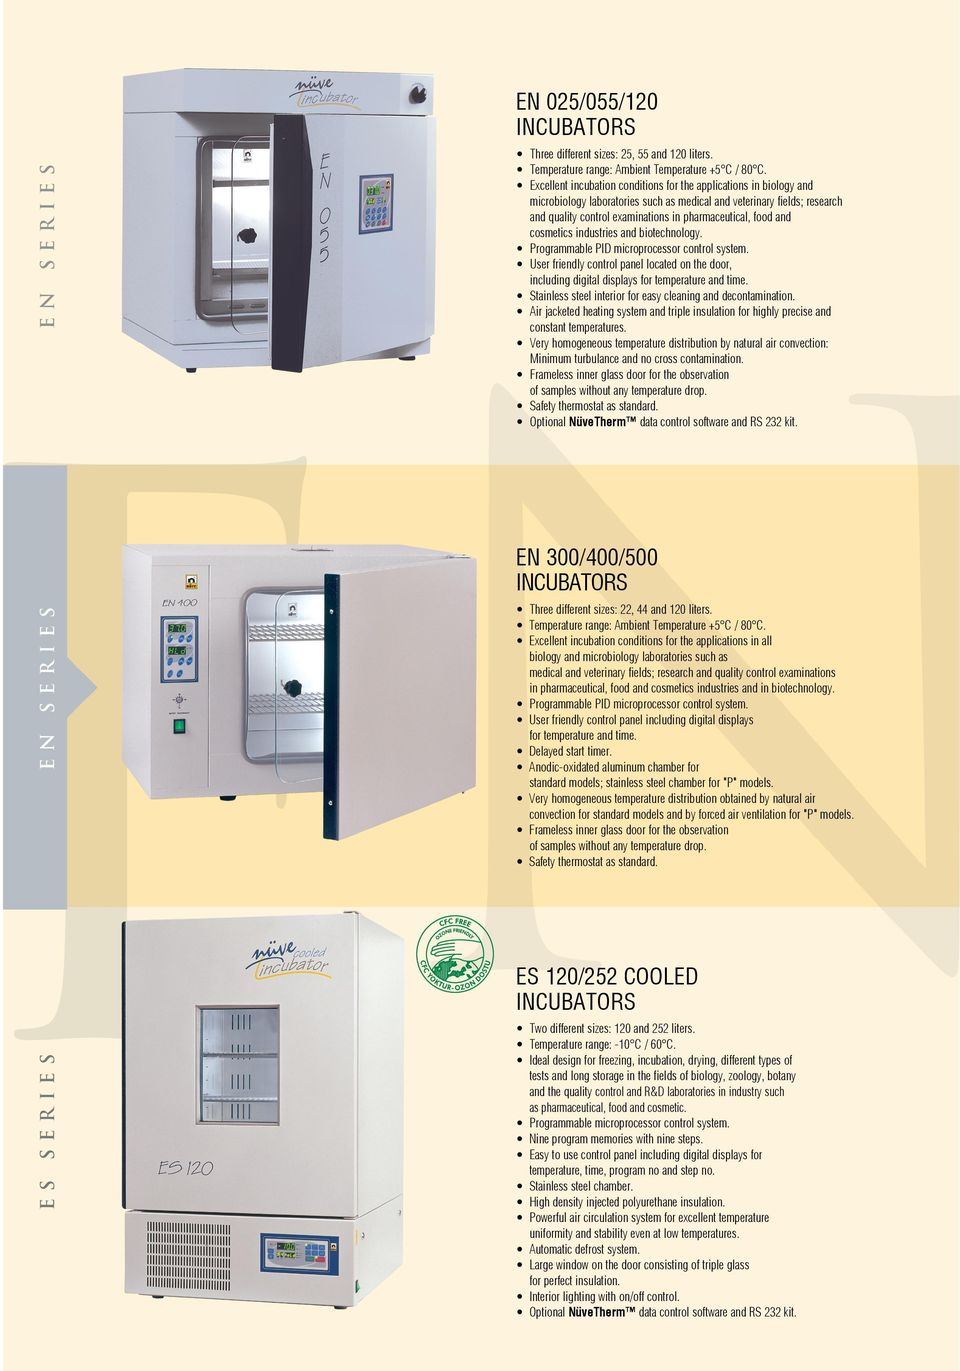 and cosmetics industries and biotechnology. Programmable PID microprocessor control system. User friendly control panel located on the door, including digital displays for temperature and time.